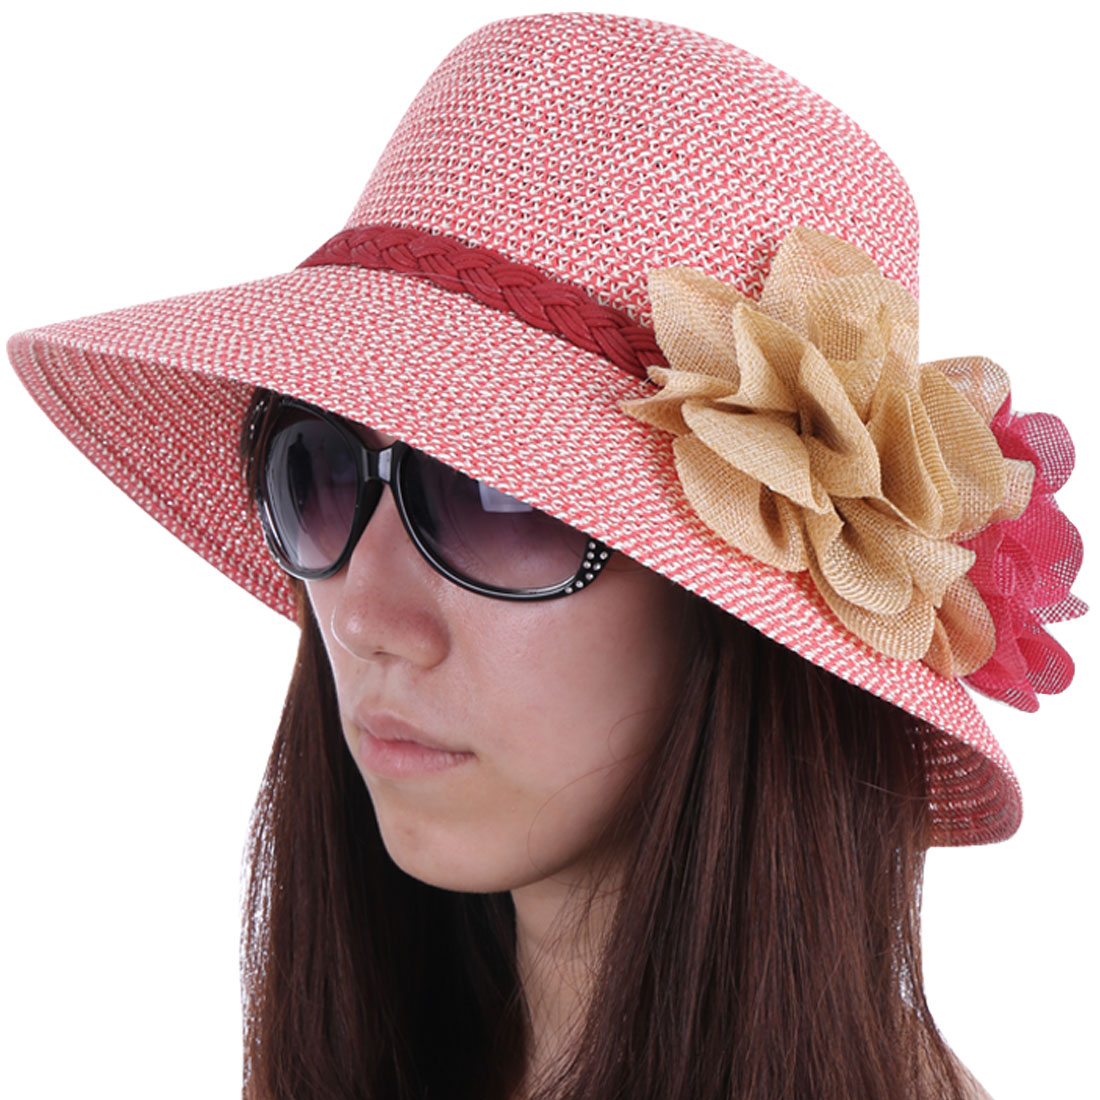 Ladies Stylish Handmade Flower Decor Round Brim Pink White Sun Hat